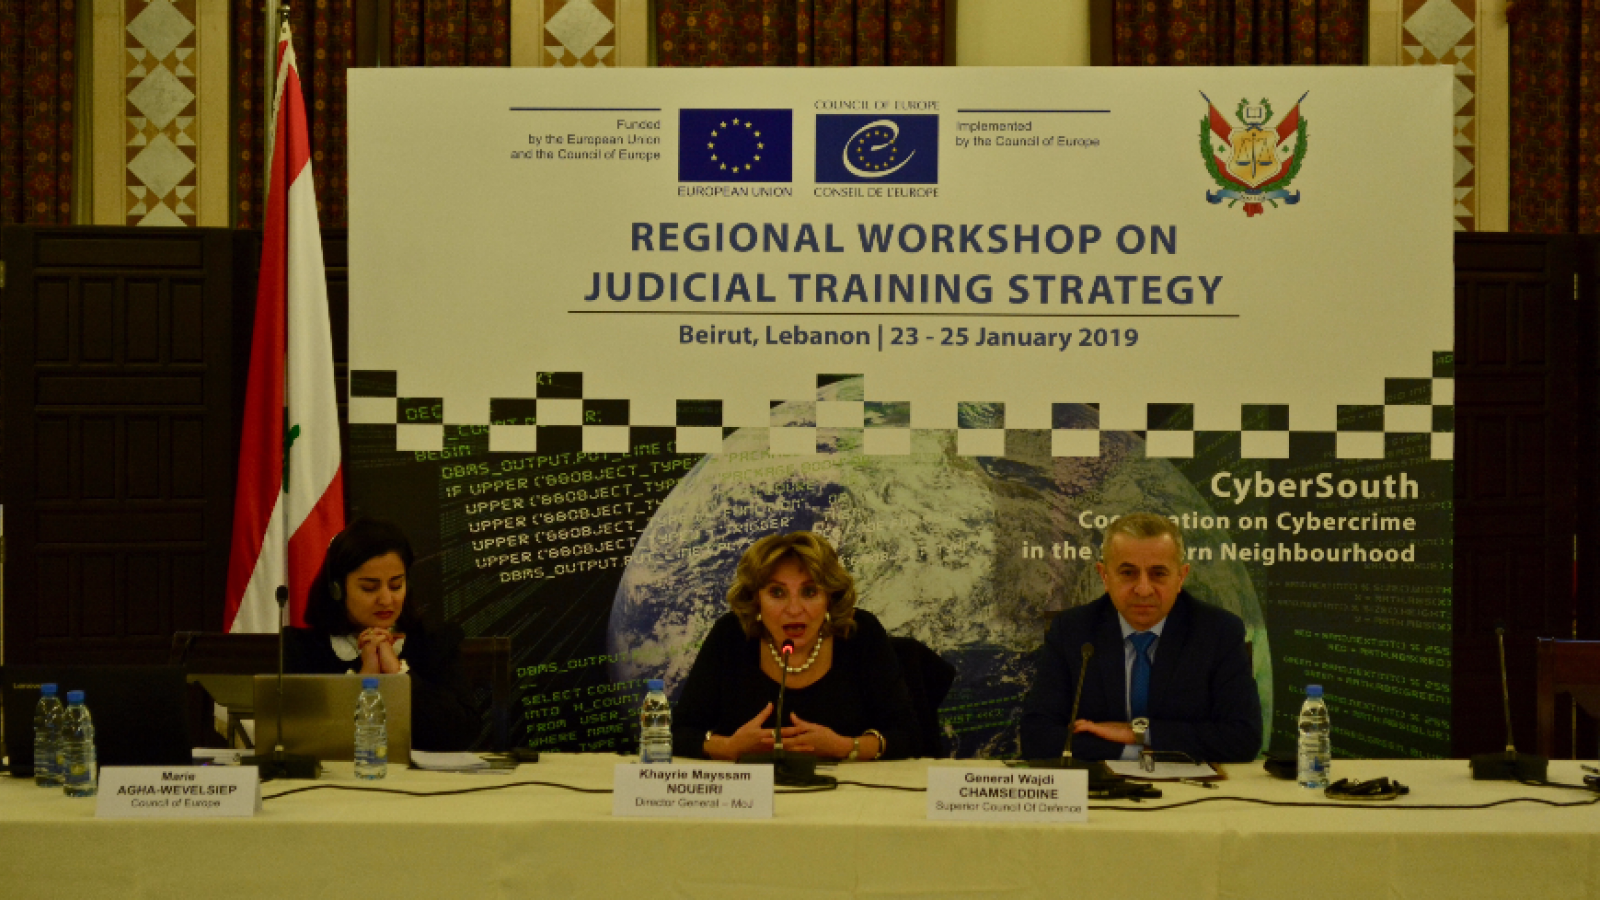 EU-funded CyberSouth organises Regional Workshop on Judicial Training Strategy